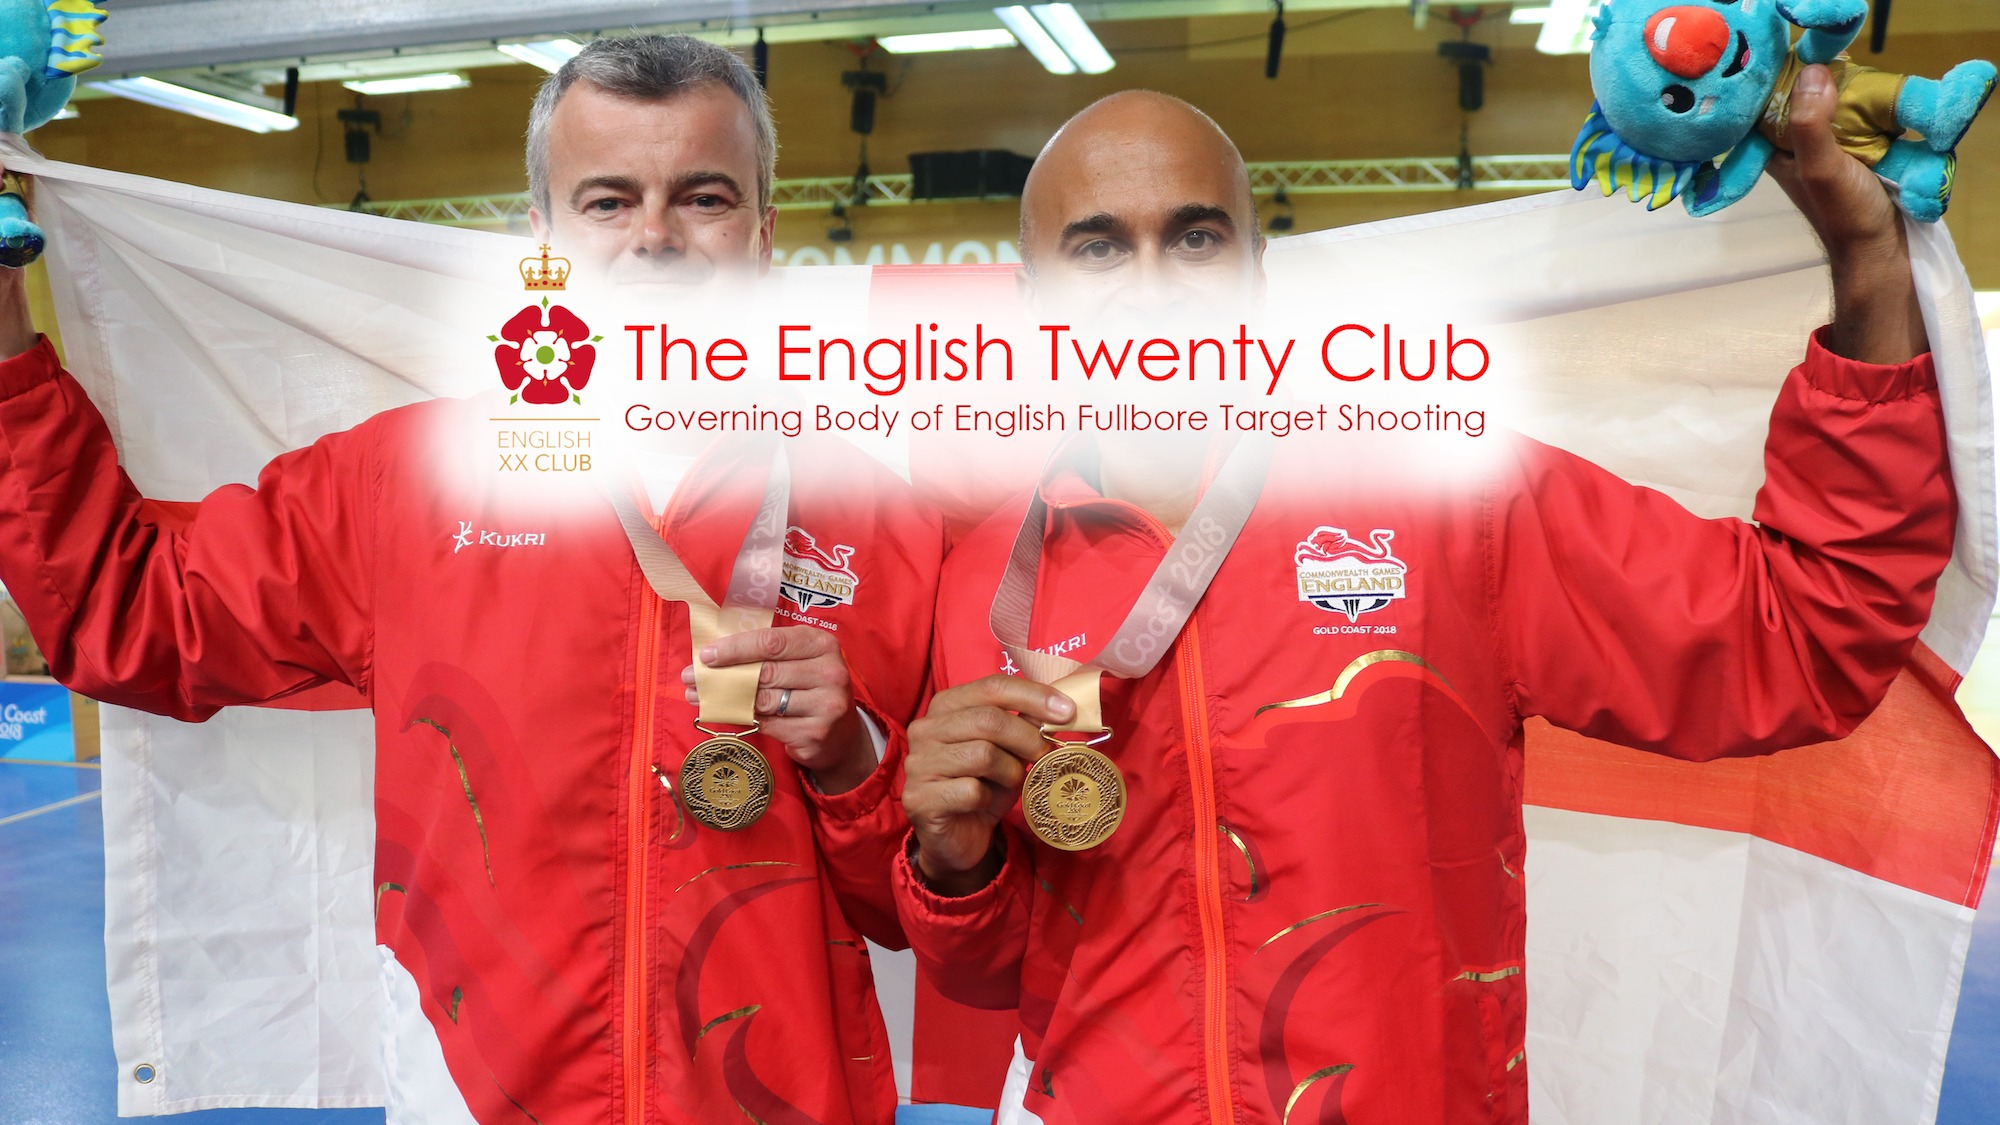 The English Twenty Club